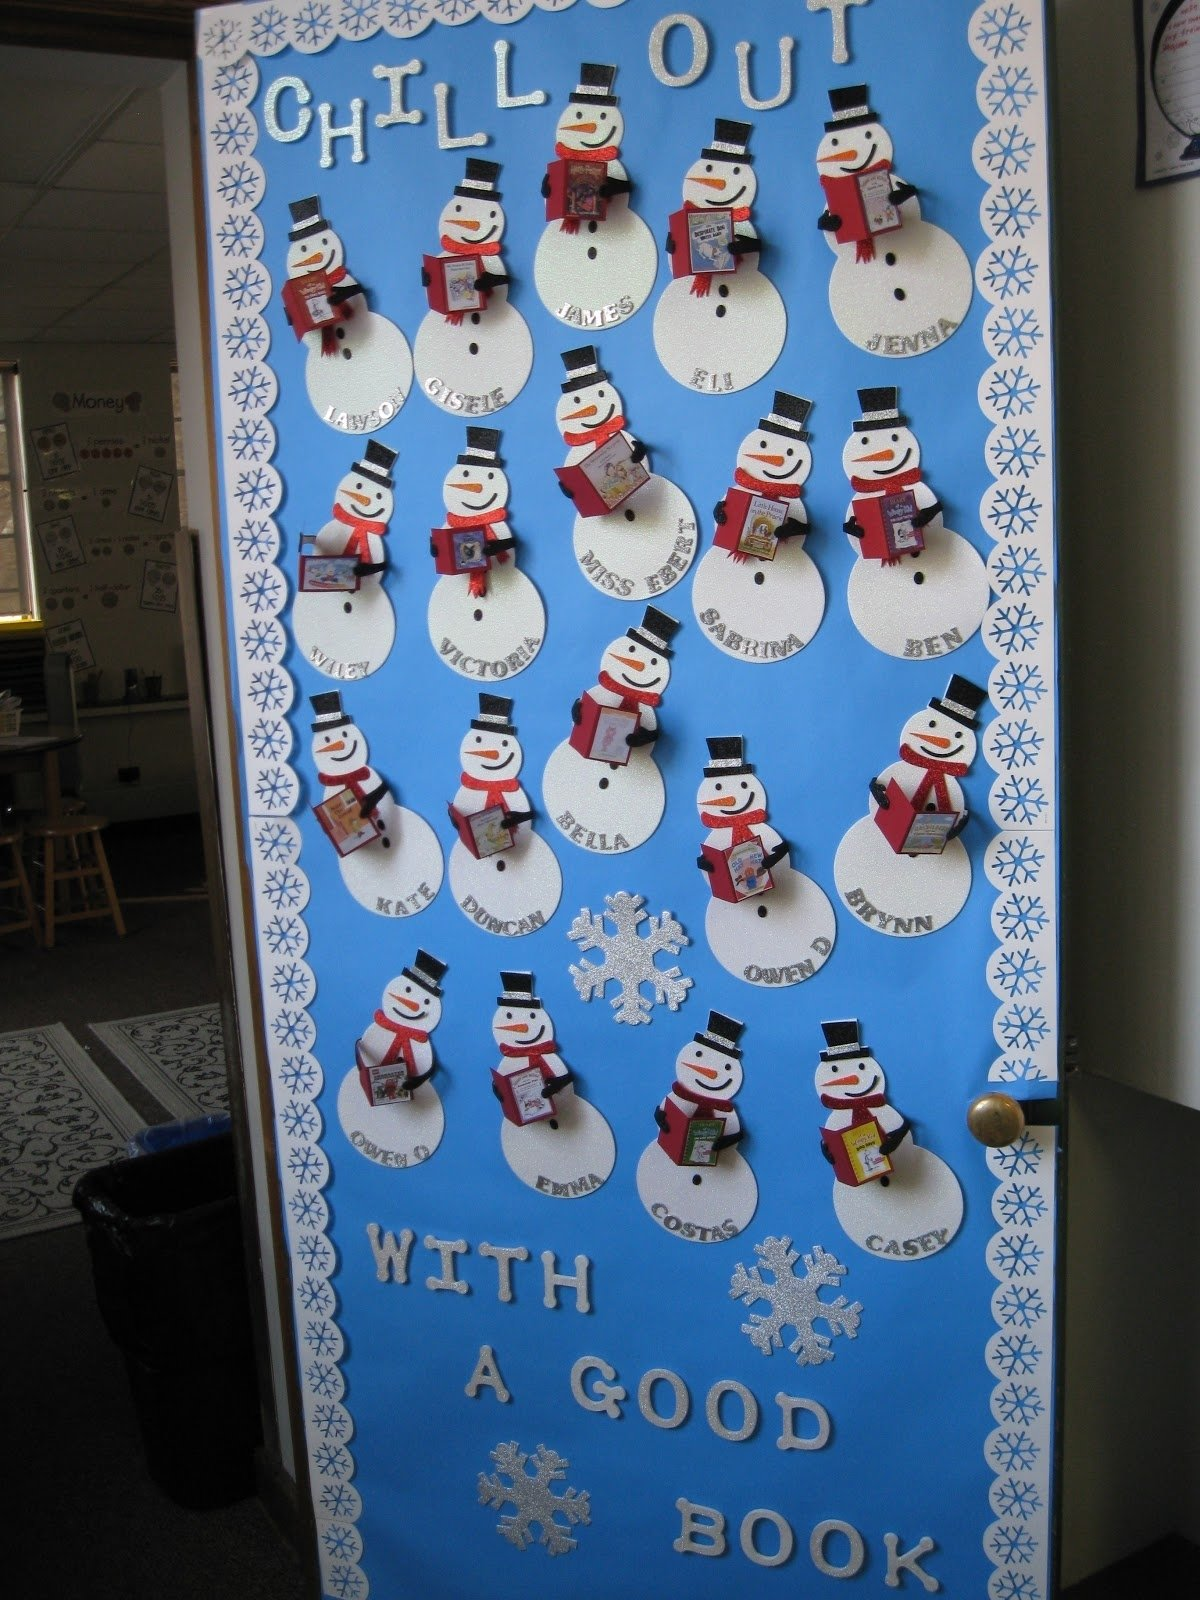 10 Stylish January Bulletin Board Ideas For Teachers kleinspiration holiday door decorations for classrooms and creative 1 2021